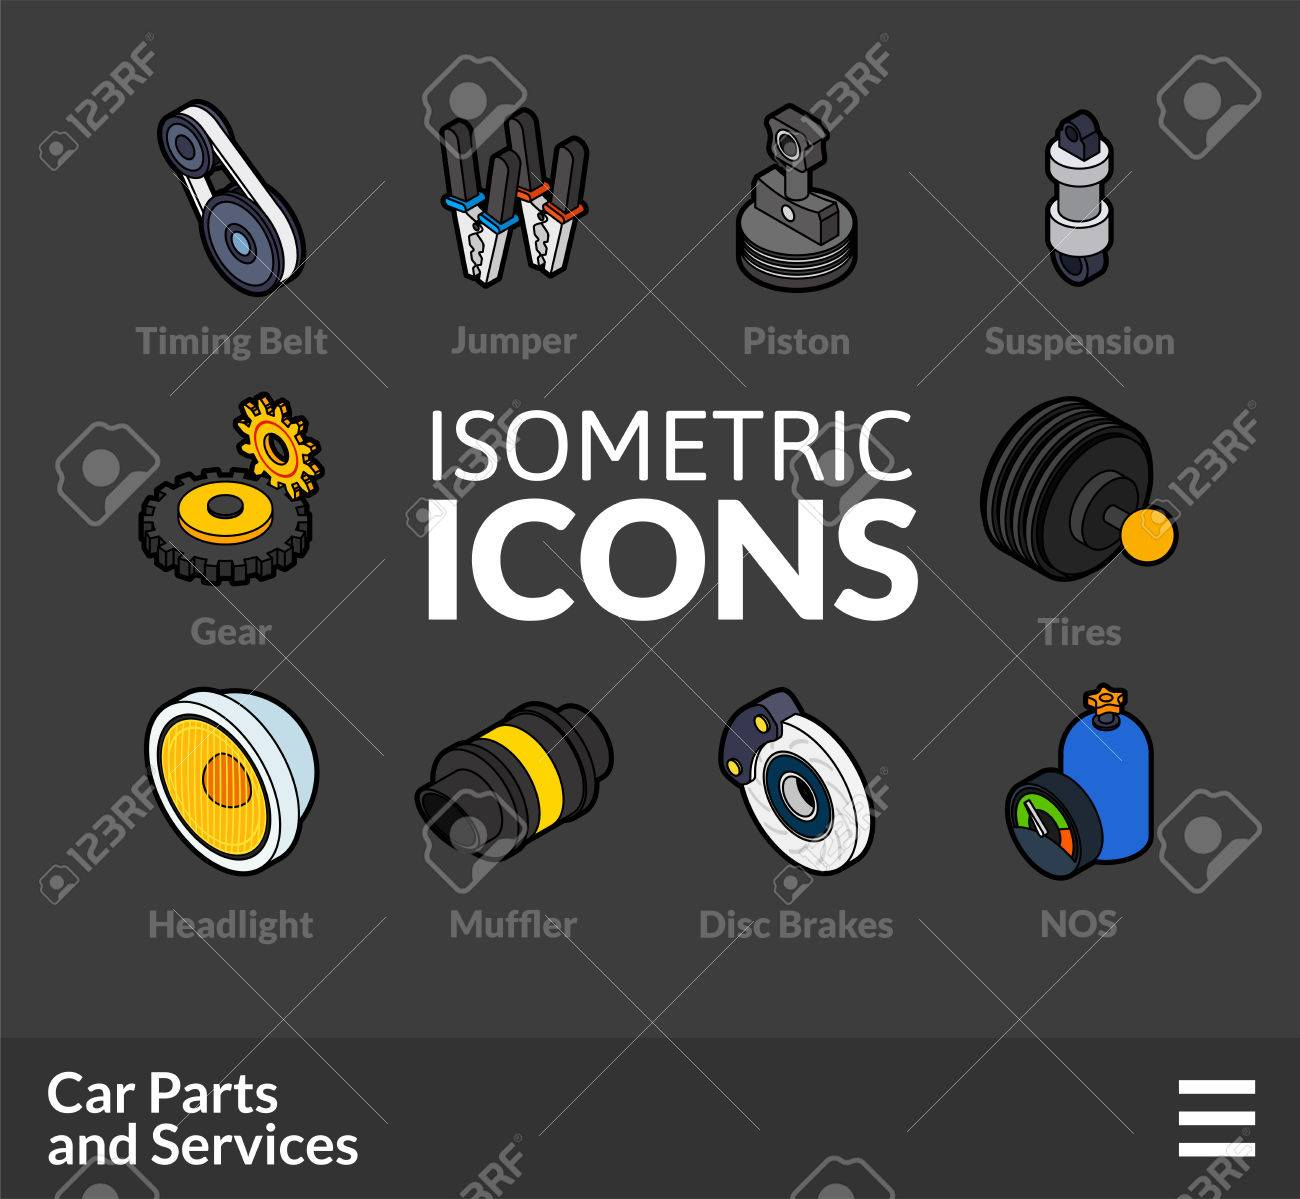 Isometric Outline T Icons 3d Pictograms Vector Set 36 Car